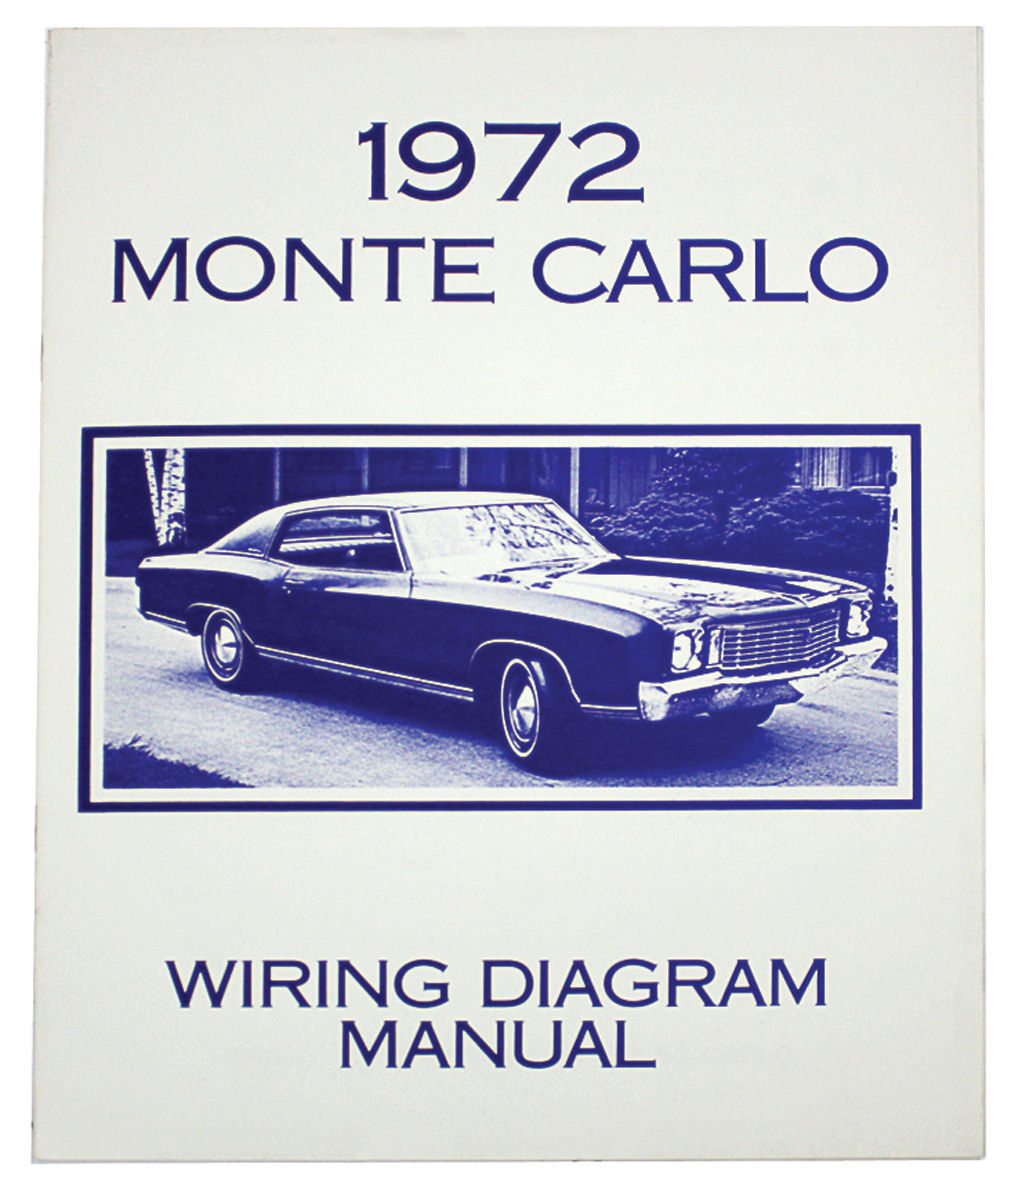 1972 monte carlo wiring diagram wiring library for a 1999 chevy monte carlo wiring diagram 1970 monte carlo alternator wiring diagram [ 1022 x 1200 Pixel ]